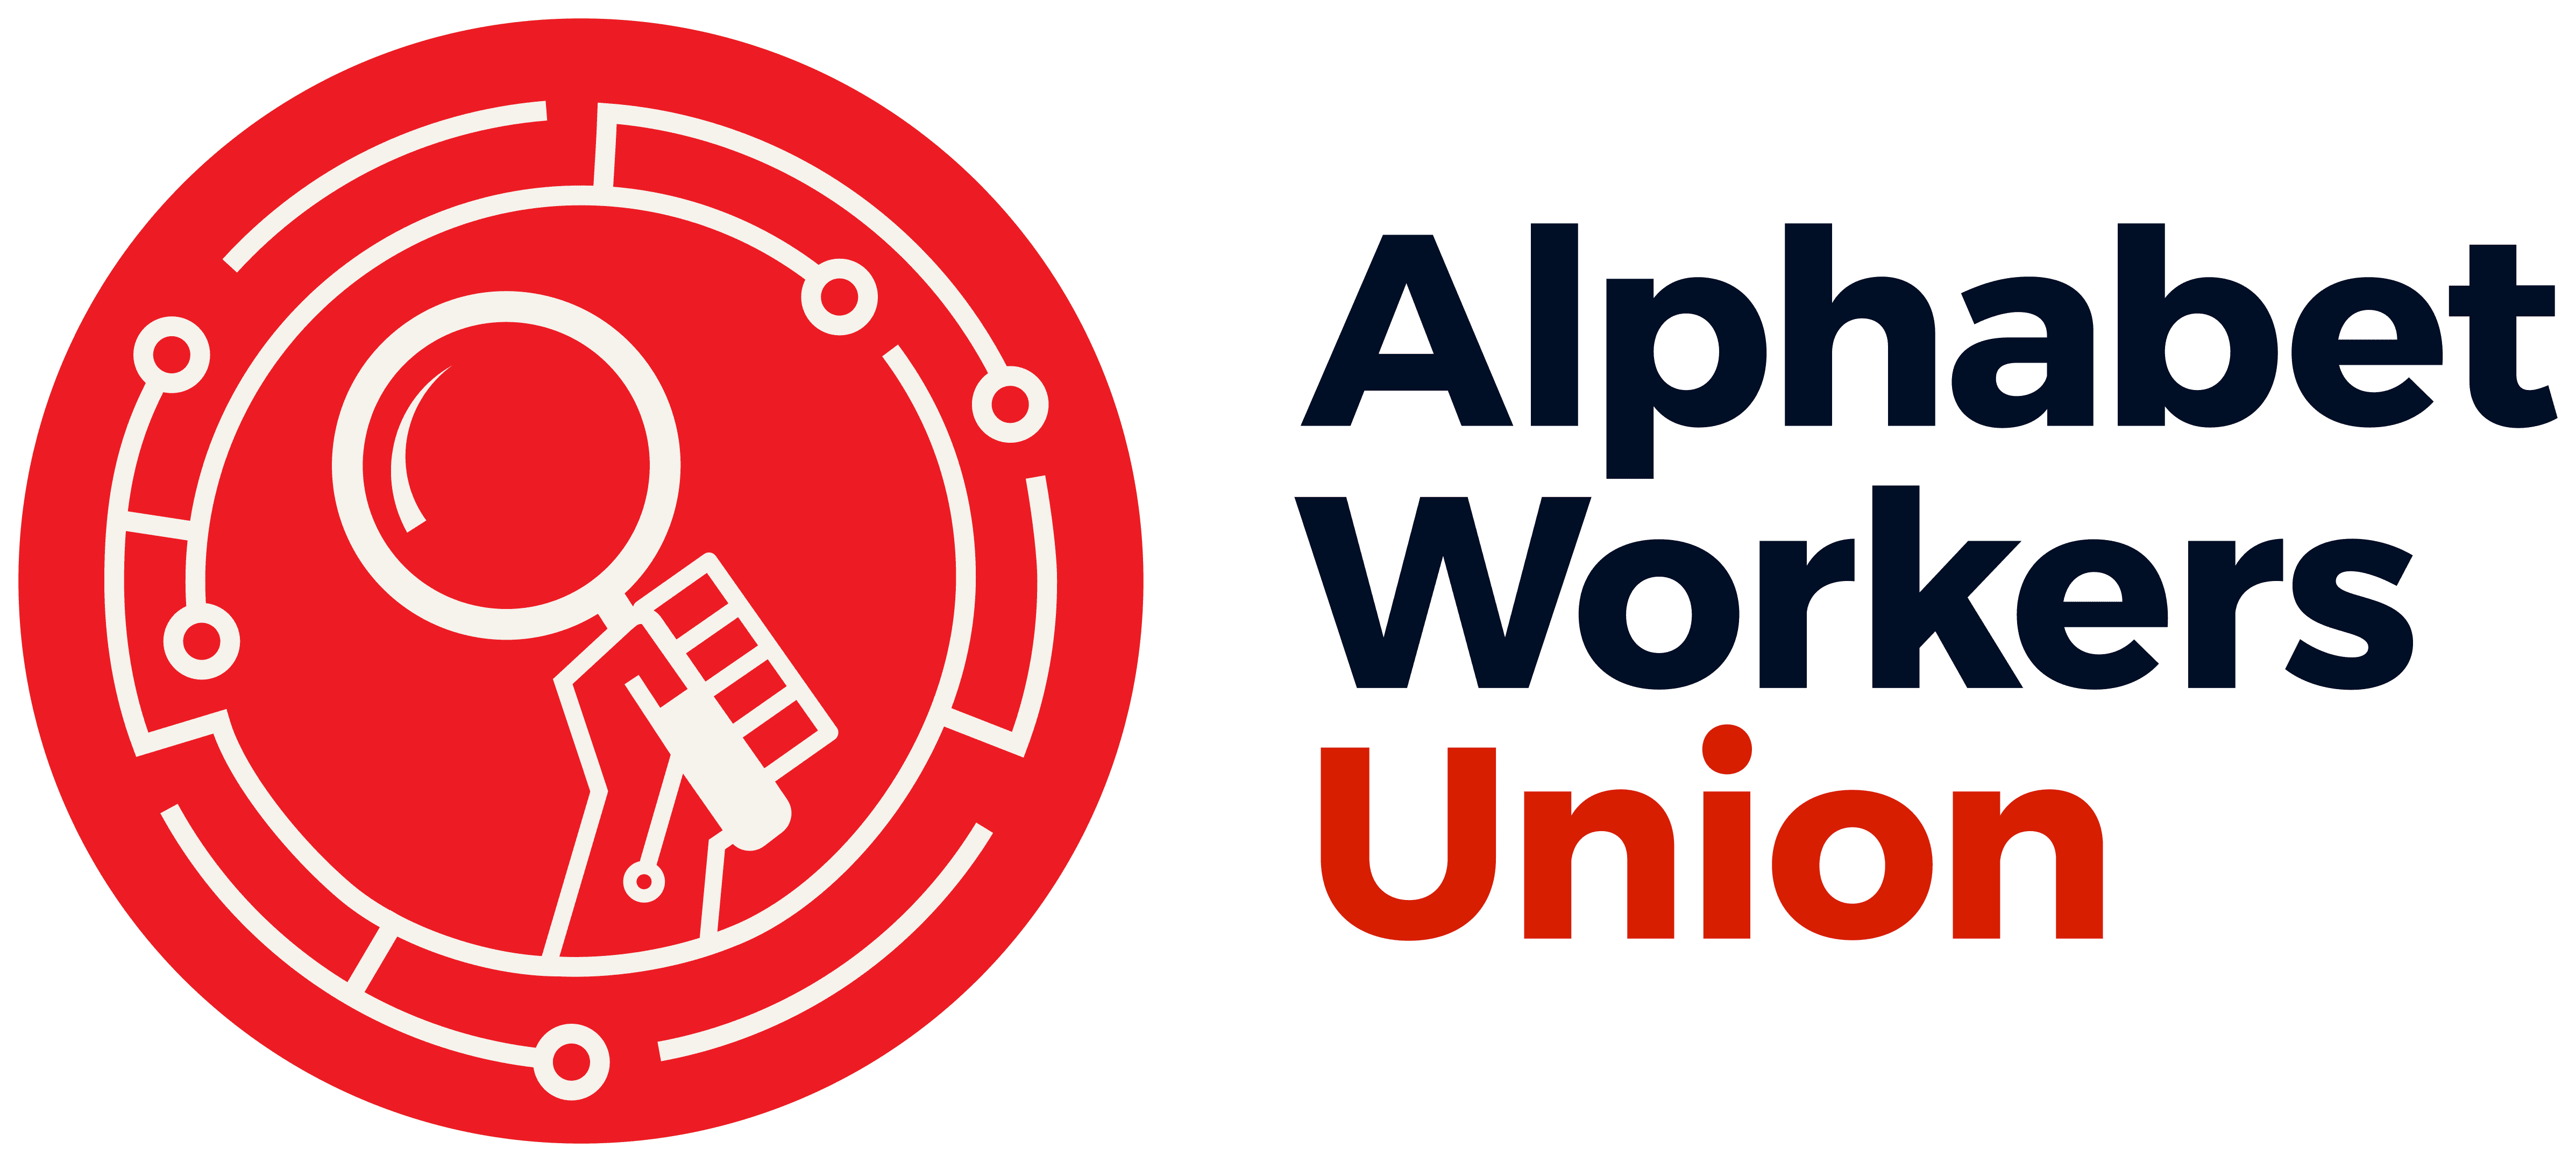 A logo for the Alphabet Workers Union logo with a hand holding a magnifying glass in red, black, and white